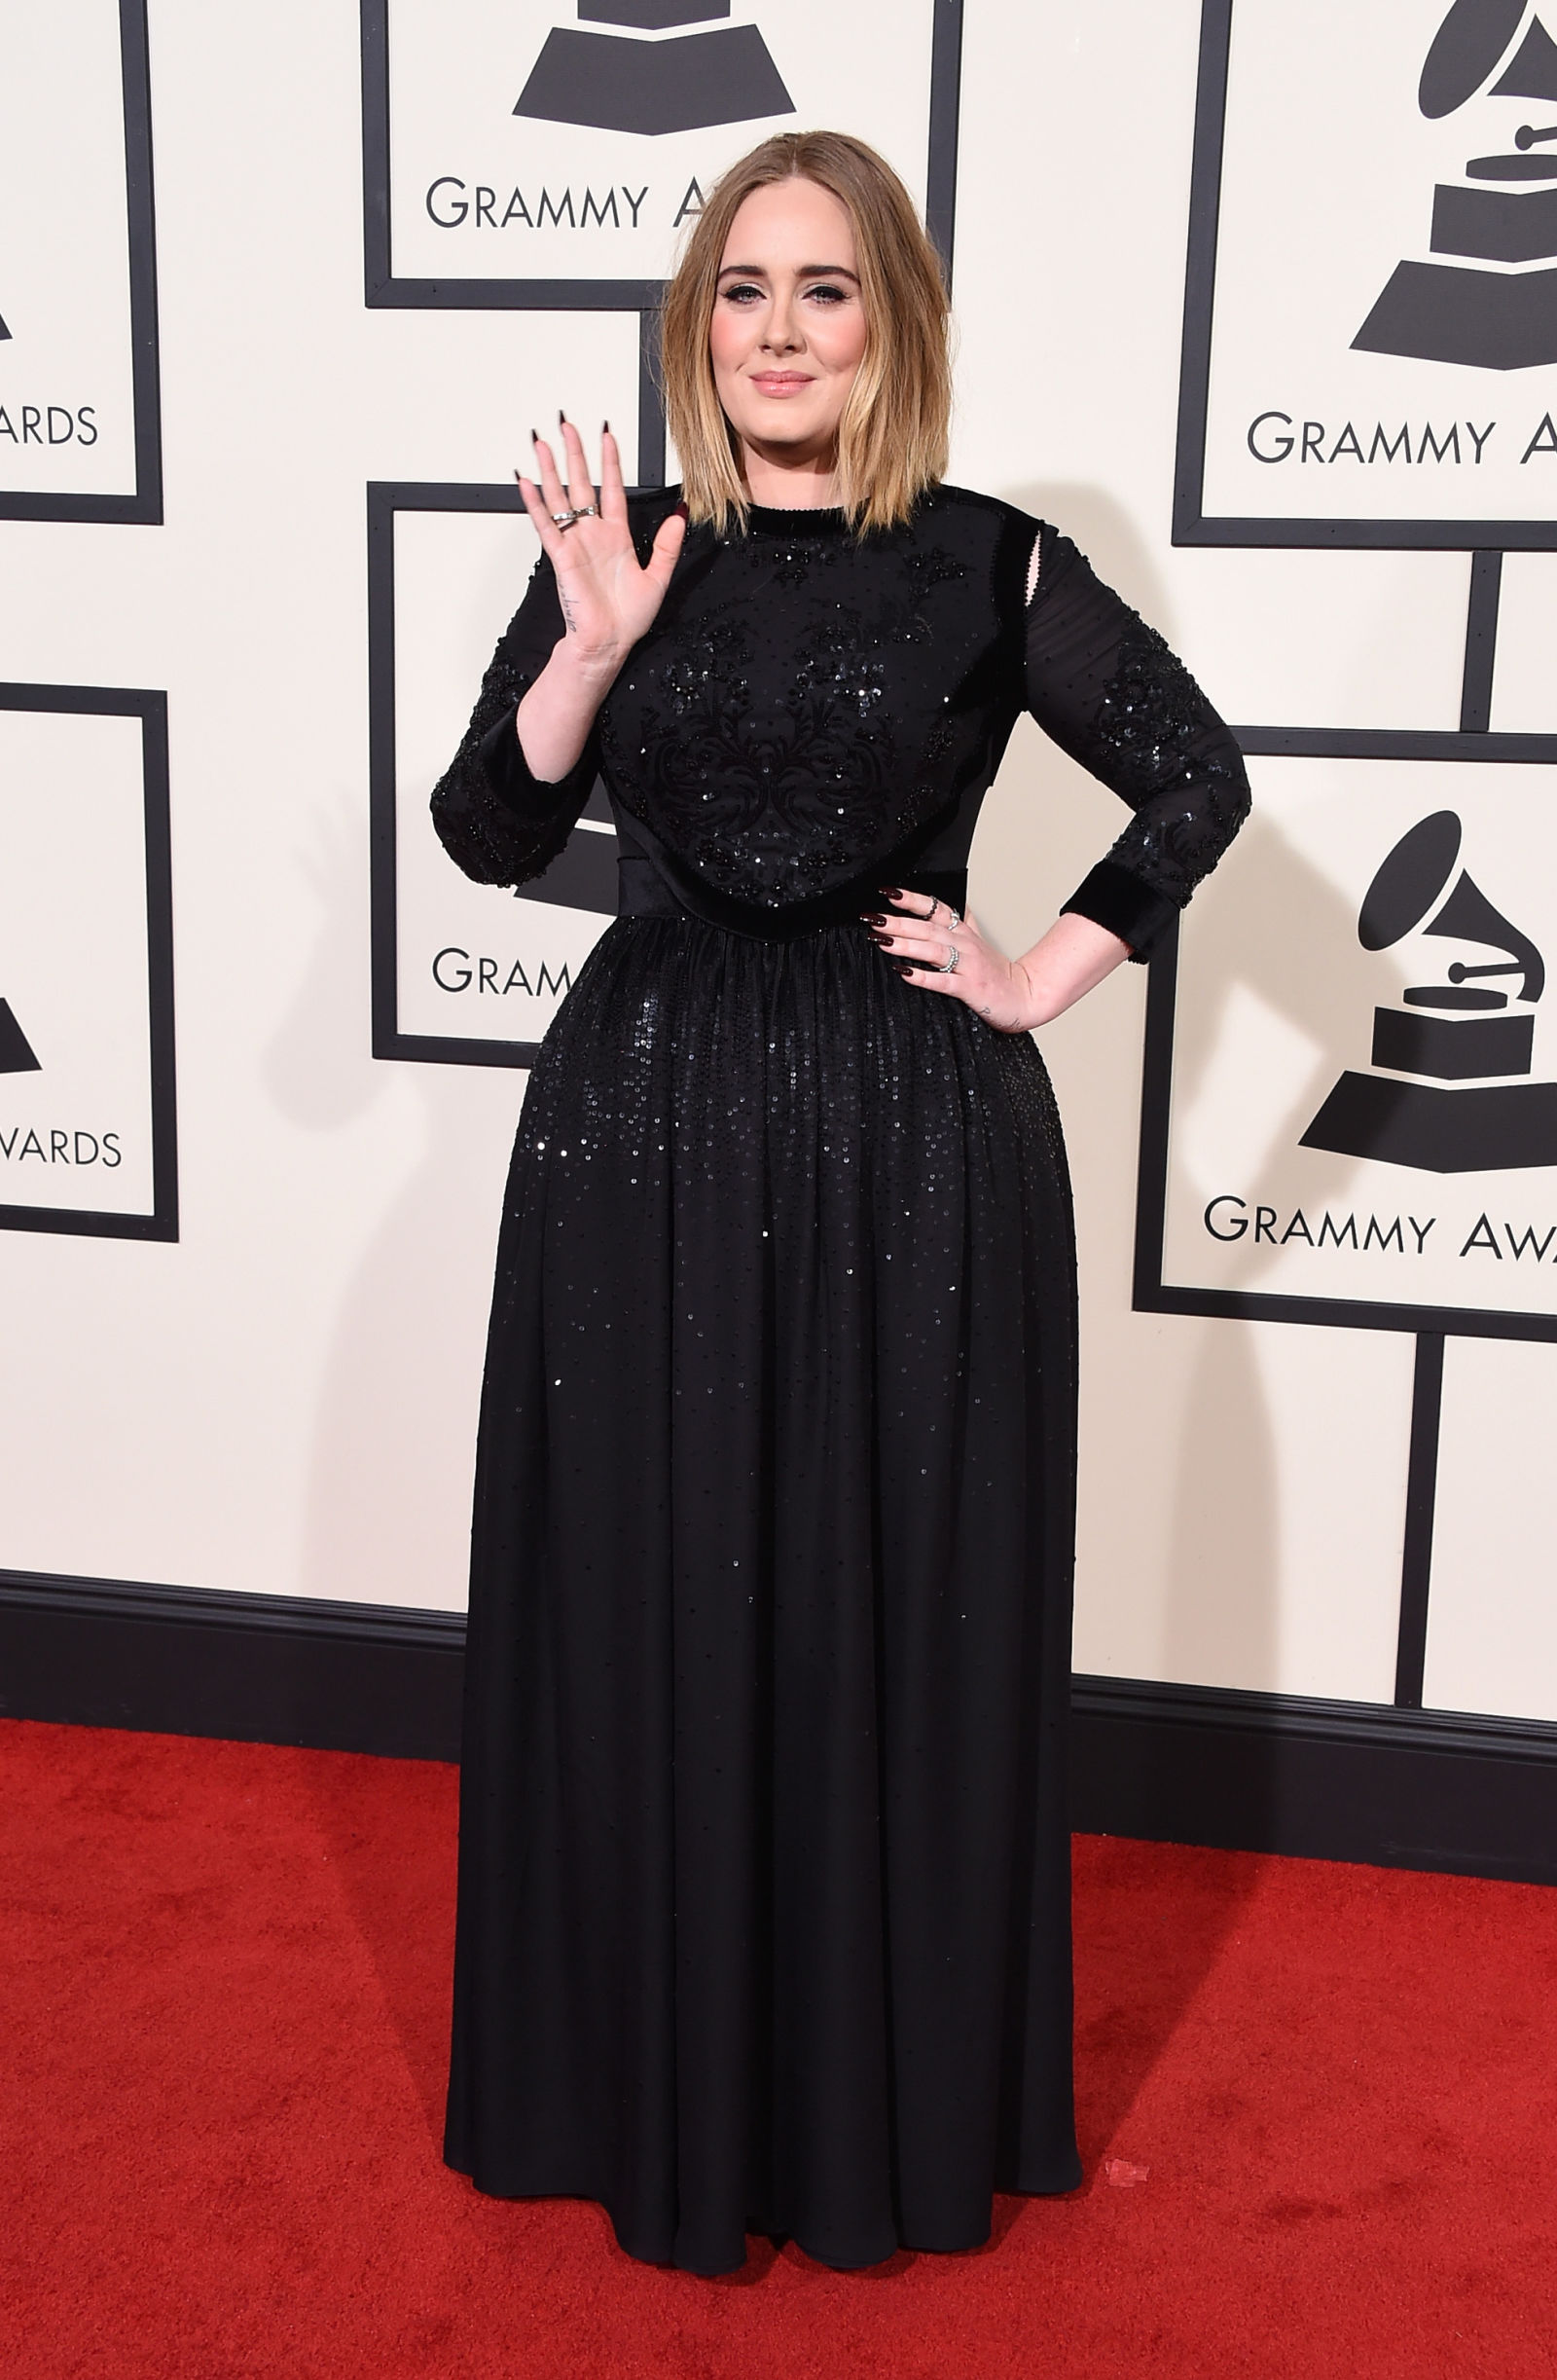 ADELE celebrity hairstyles 2016 Grammys